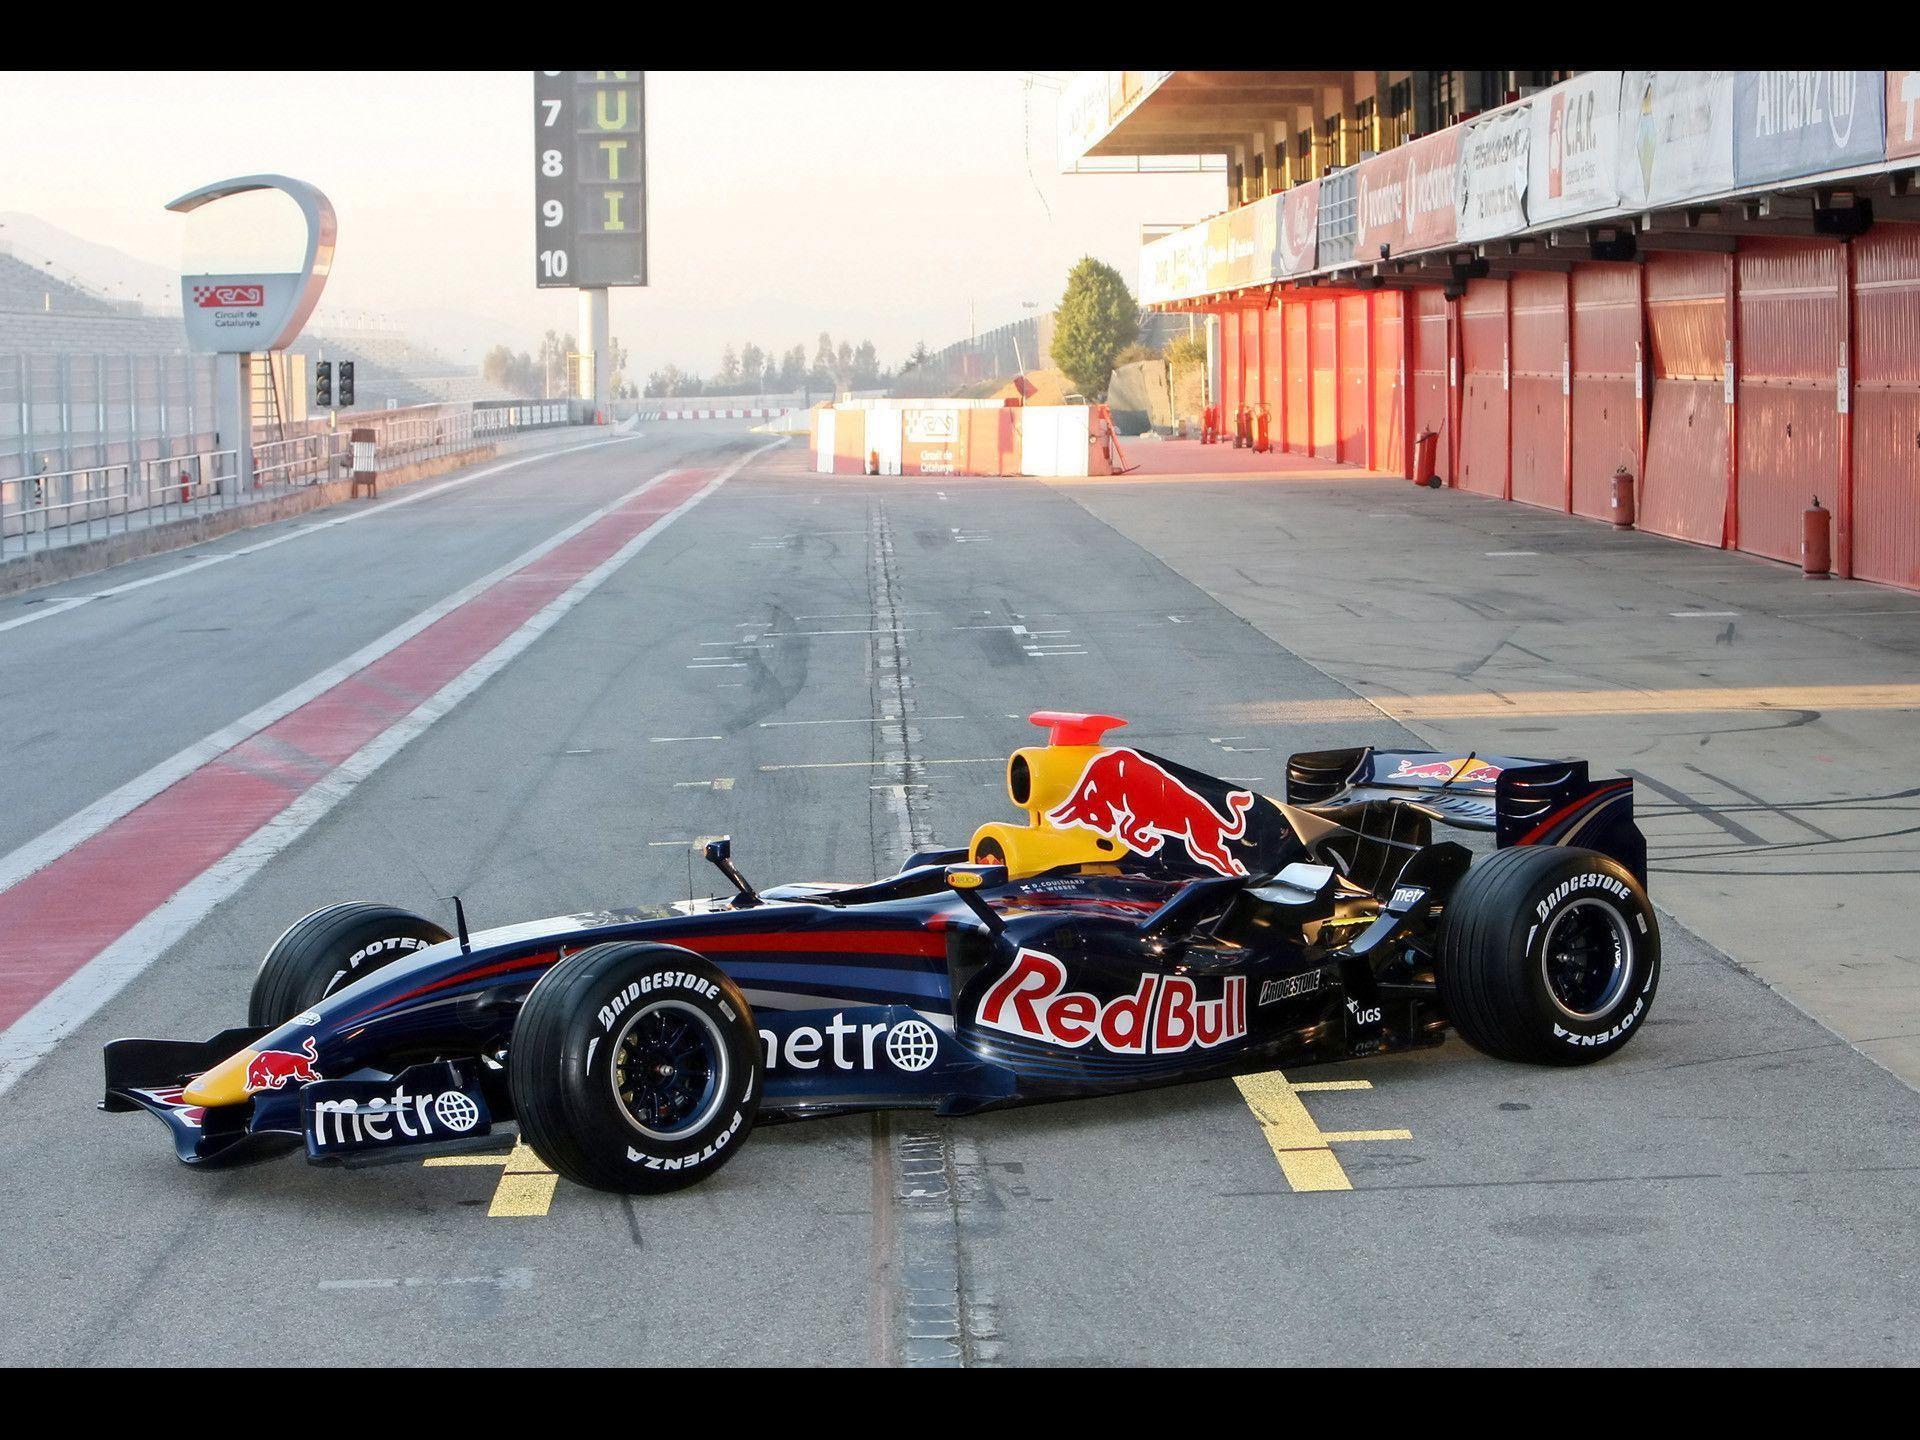 Red bull rb3 photo - 7